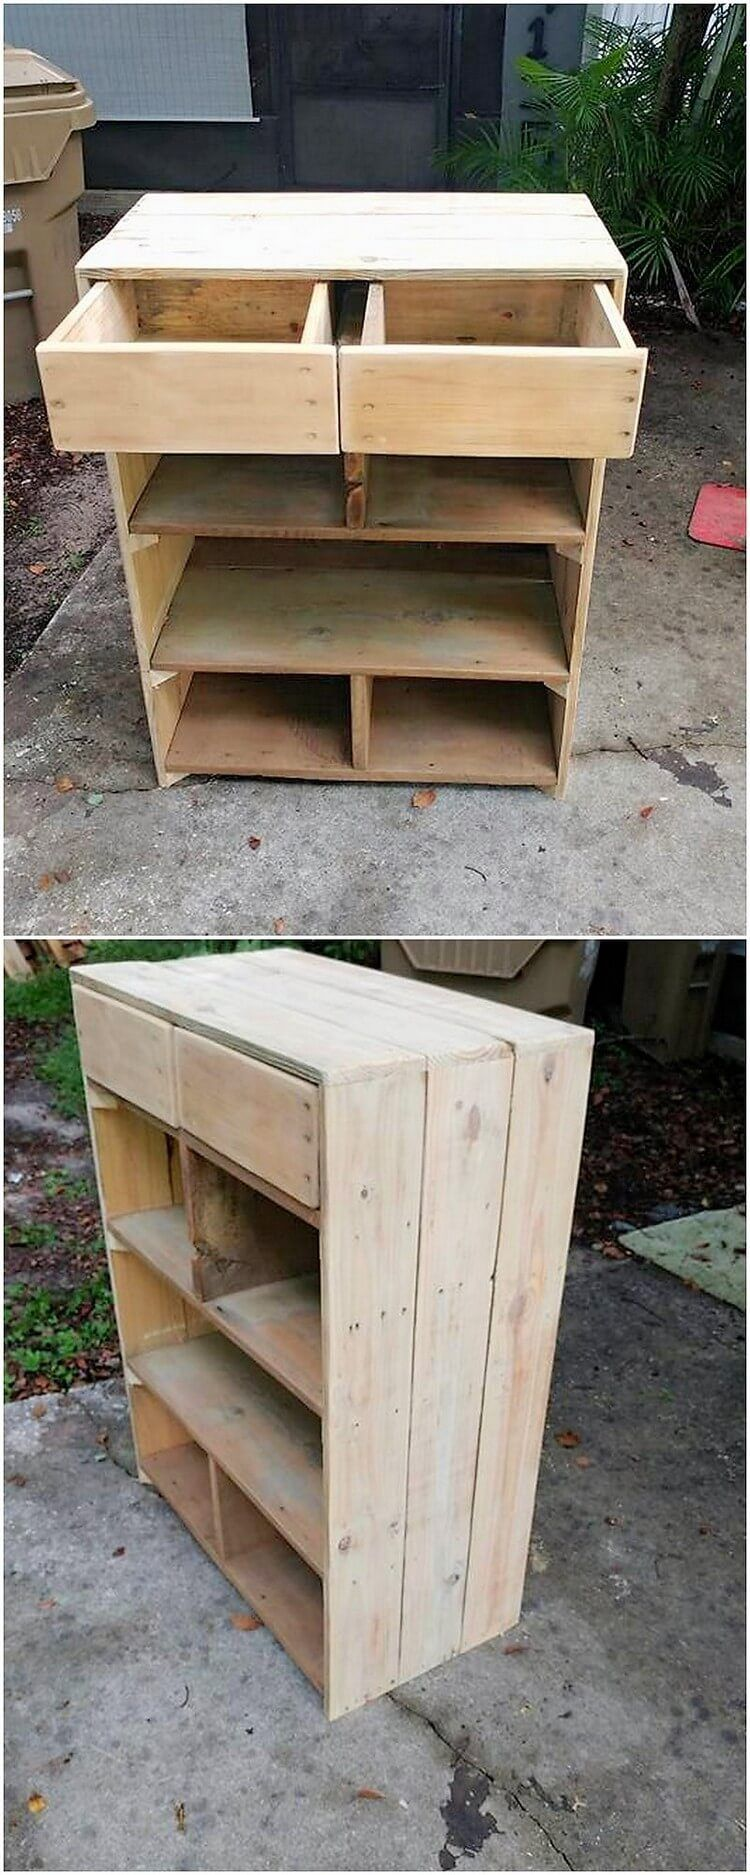 recreation ideas with old dumped wood pallets wood wood on extraordinary ideas for old used dumped pallets wood id=80454